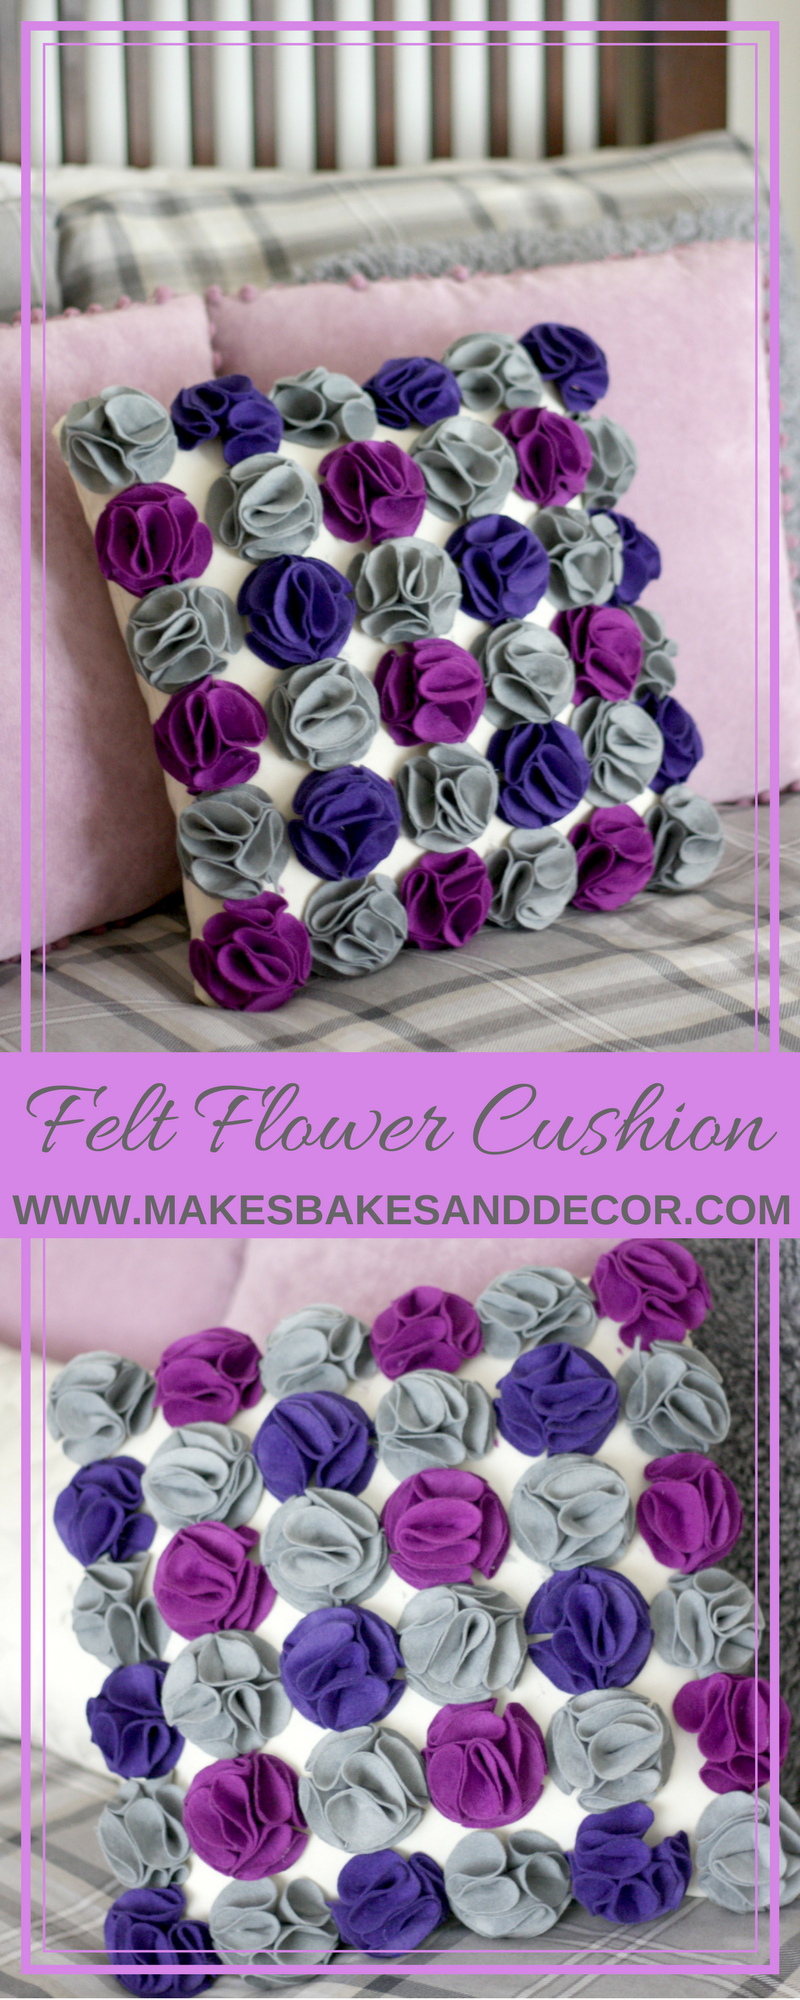 http://ravenwould.com/2017/08/13/diy-blog-challenge-flower-power/